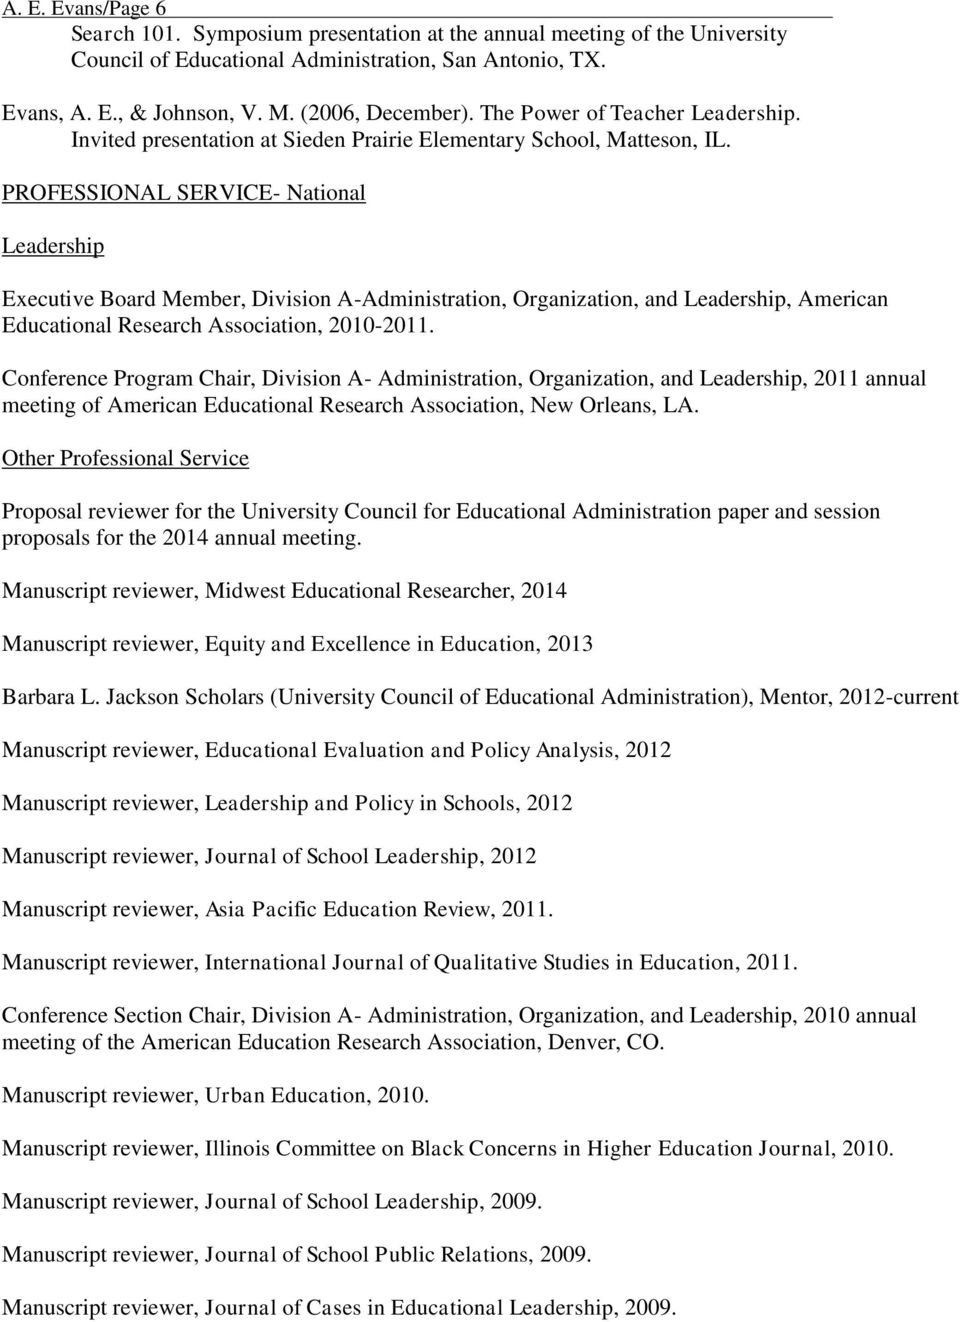 PROFESSIONAL SERVICE- National Leadership Executive Board Member, Division A-Administration, Organization, and Leadership, American Educational Research Association, 2010-2011.